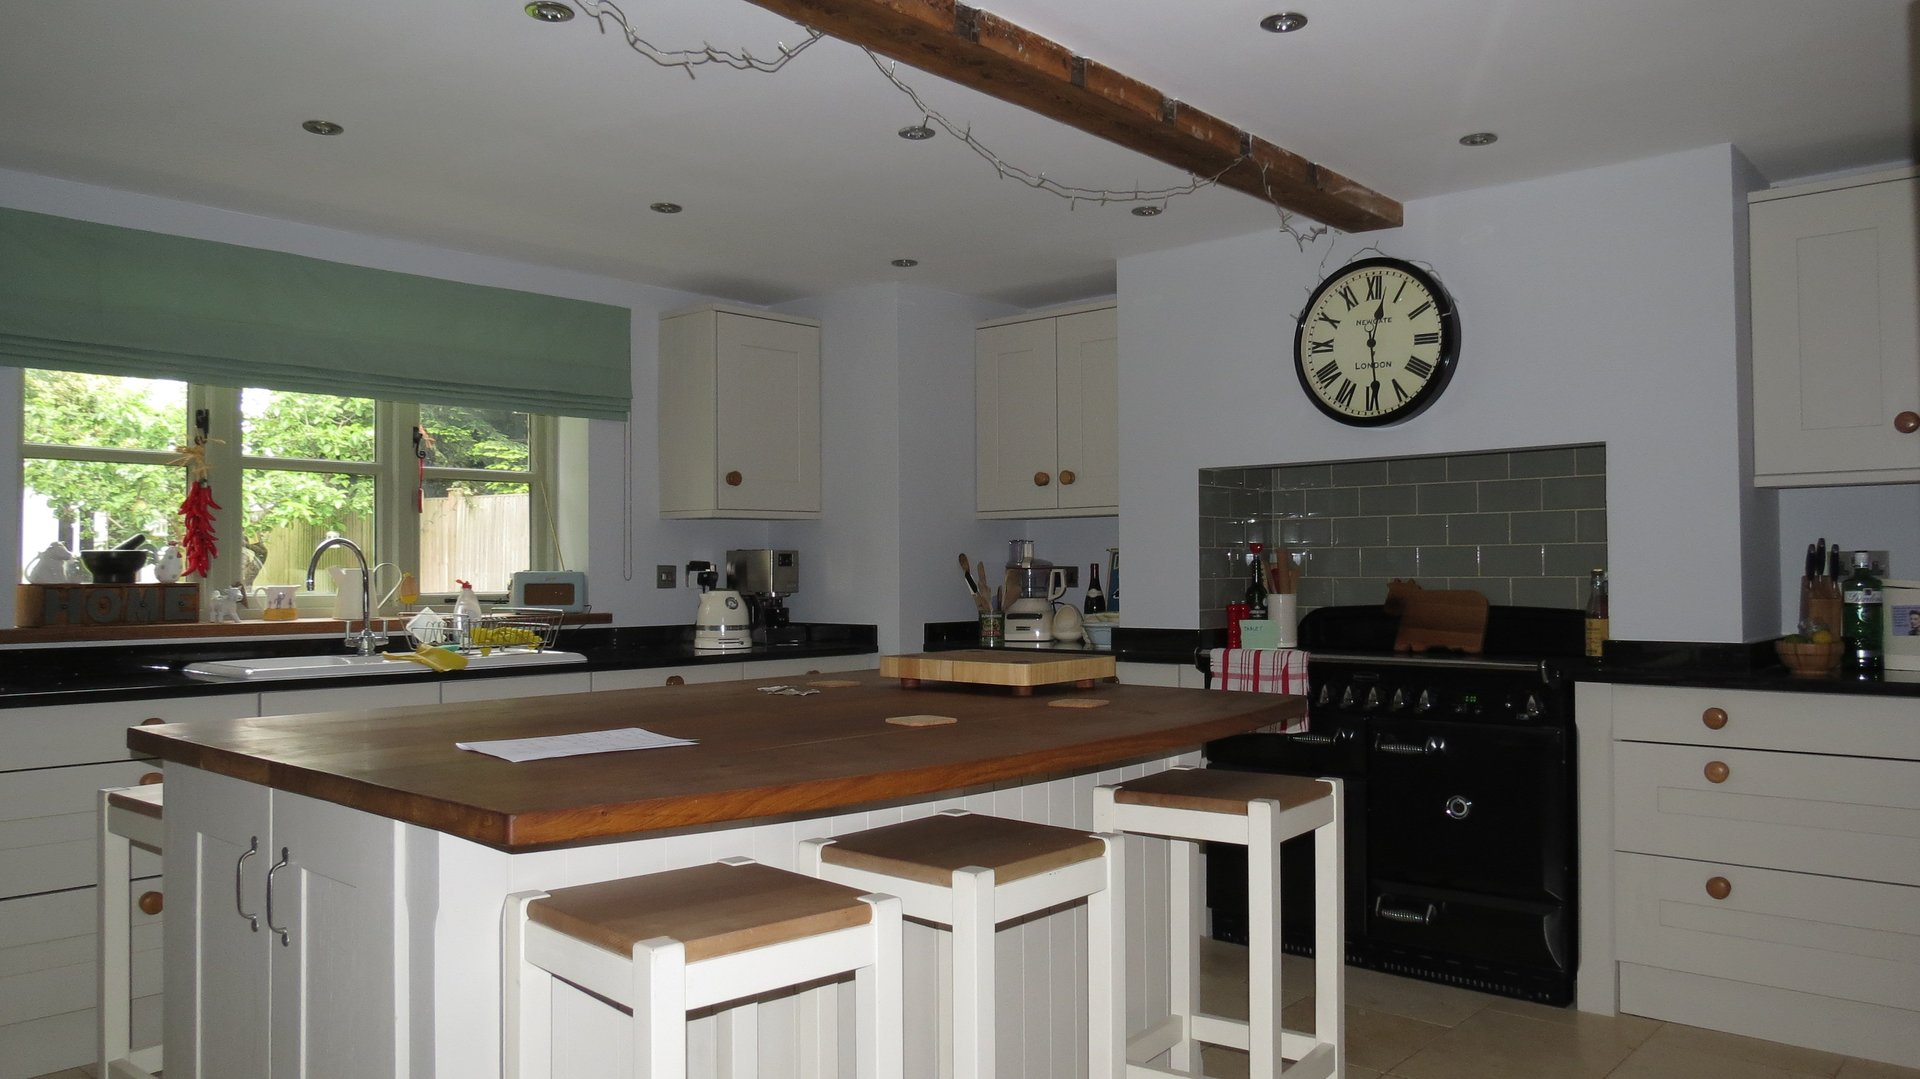 Kitchen decorated in farrow and ball colours